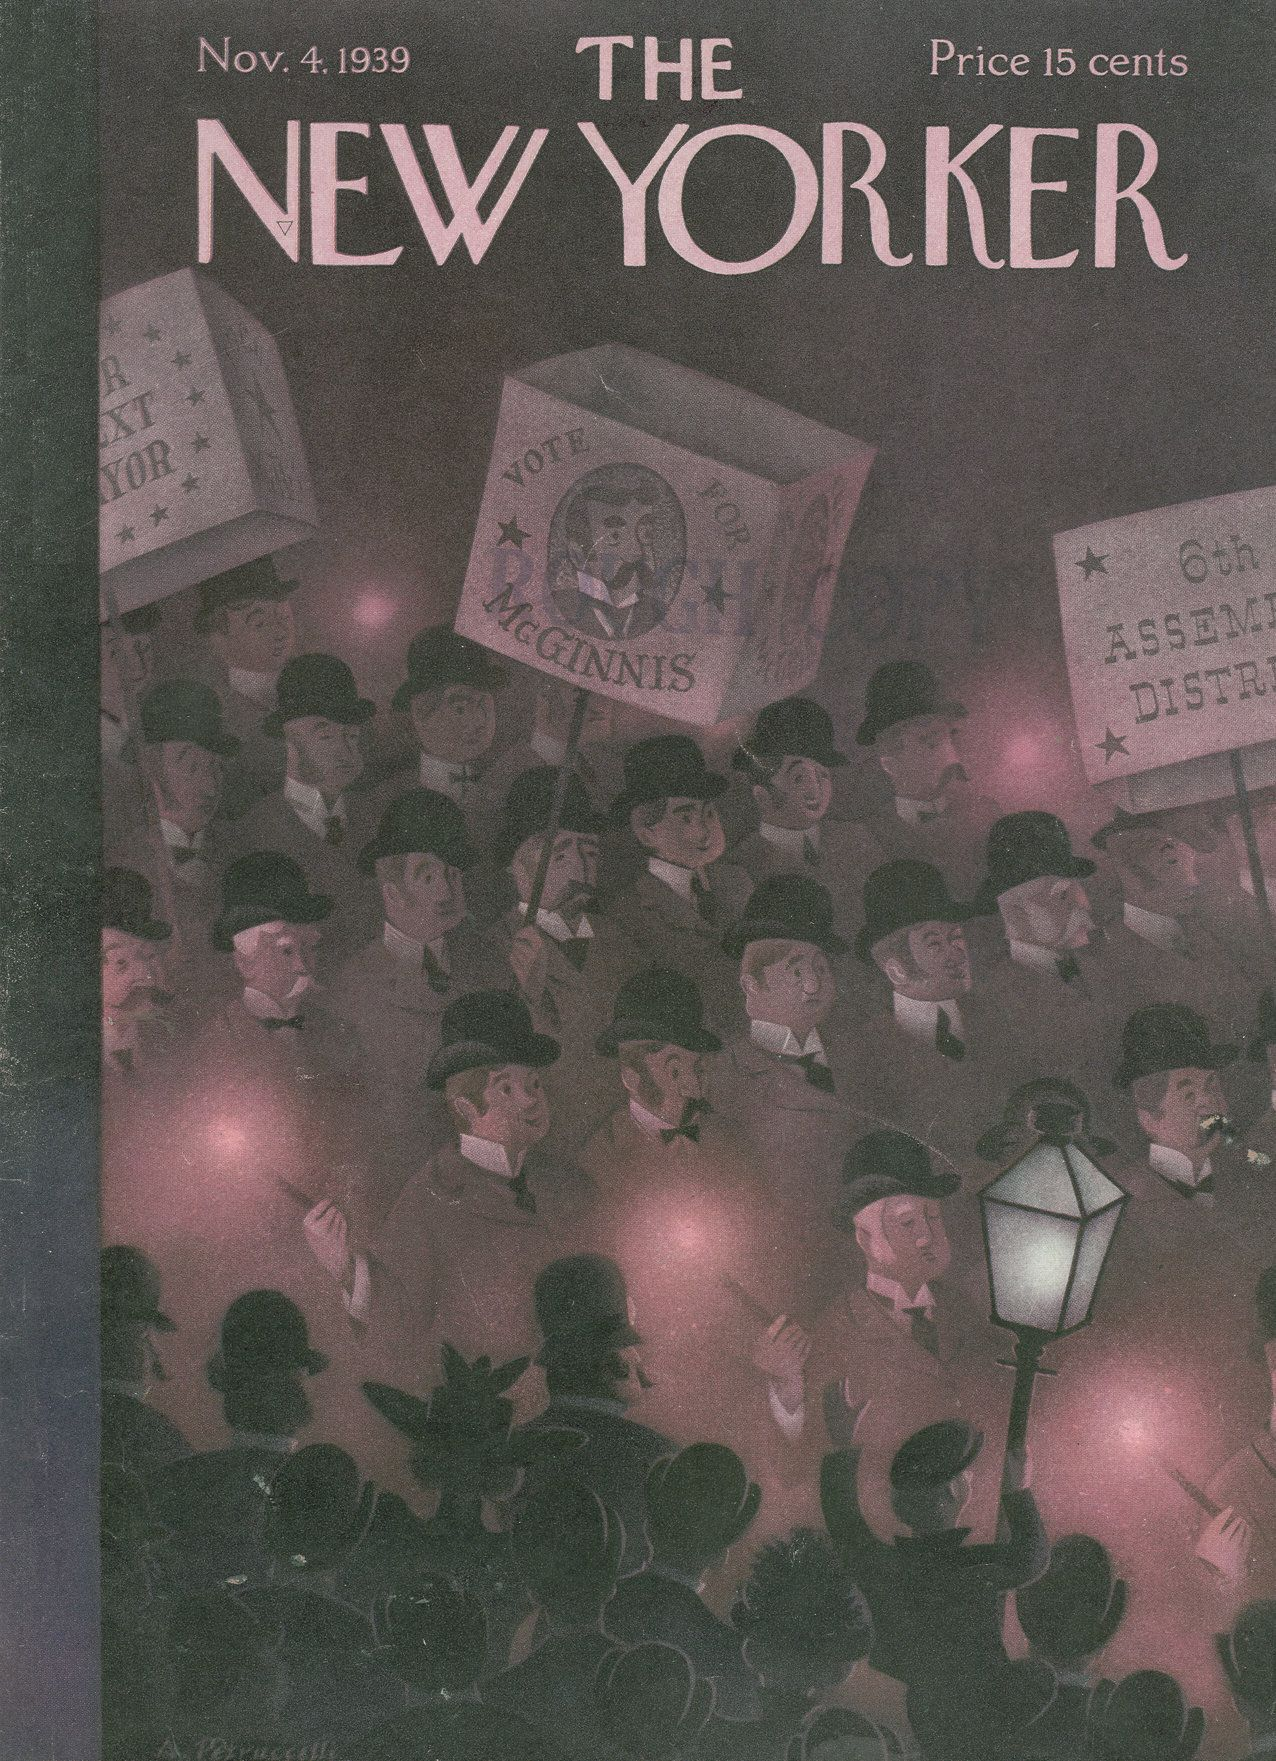 The New Yorker - Saturday, November 4, 1939 - Issue # 768 - Vol. 15 - N° 38 - Cover by : Antonio Petruccelli